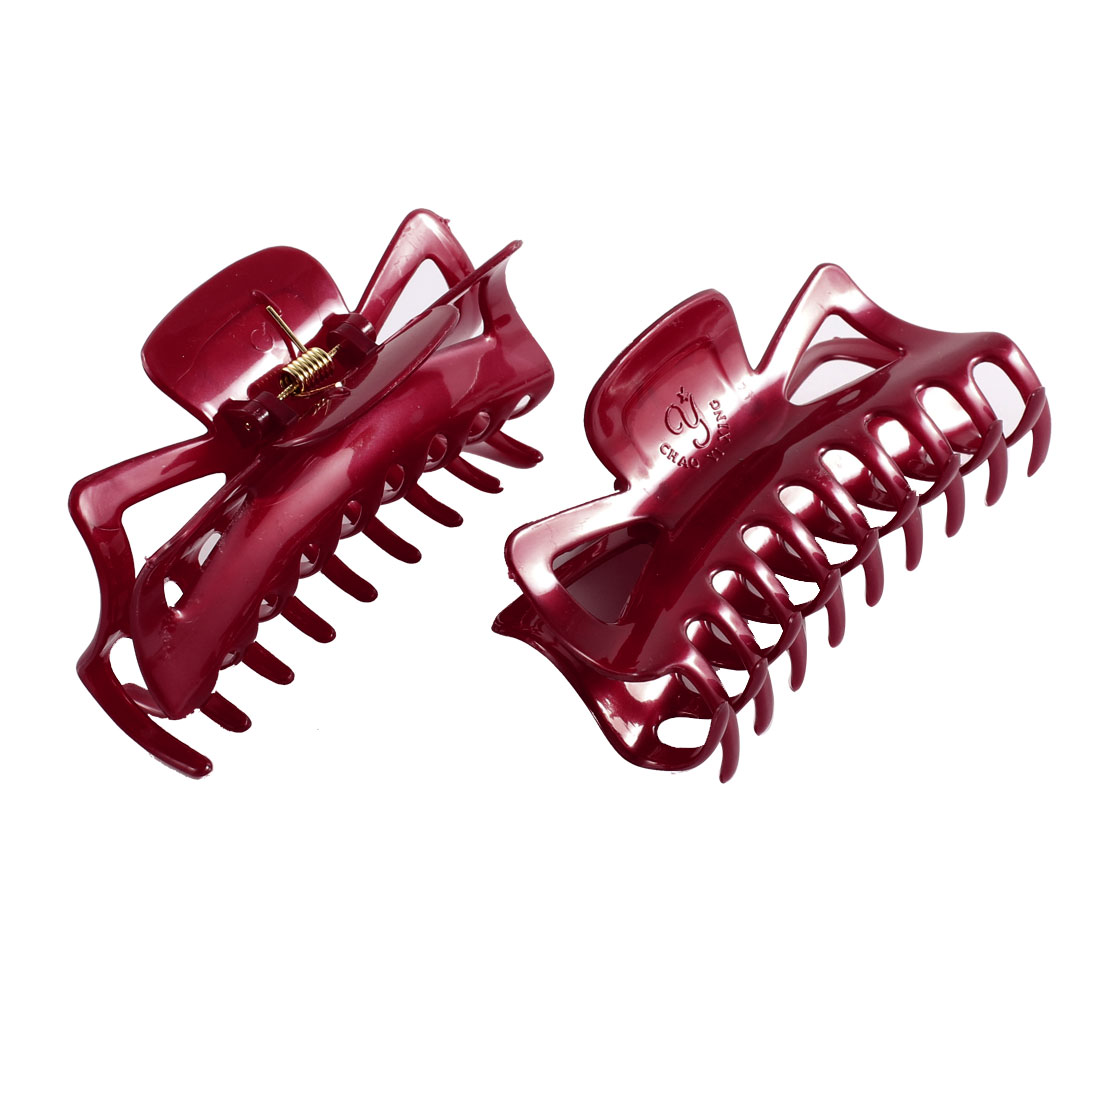 2Pcs Plastic Spring Loaded Butterfly Shaped Hairpin Hair Clip Claw Grip Burgundy